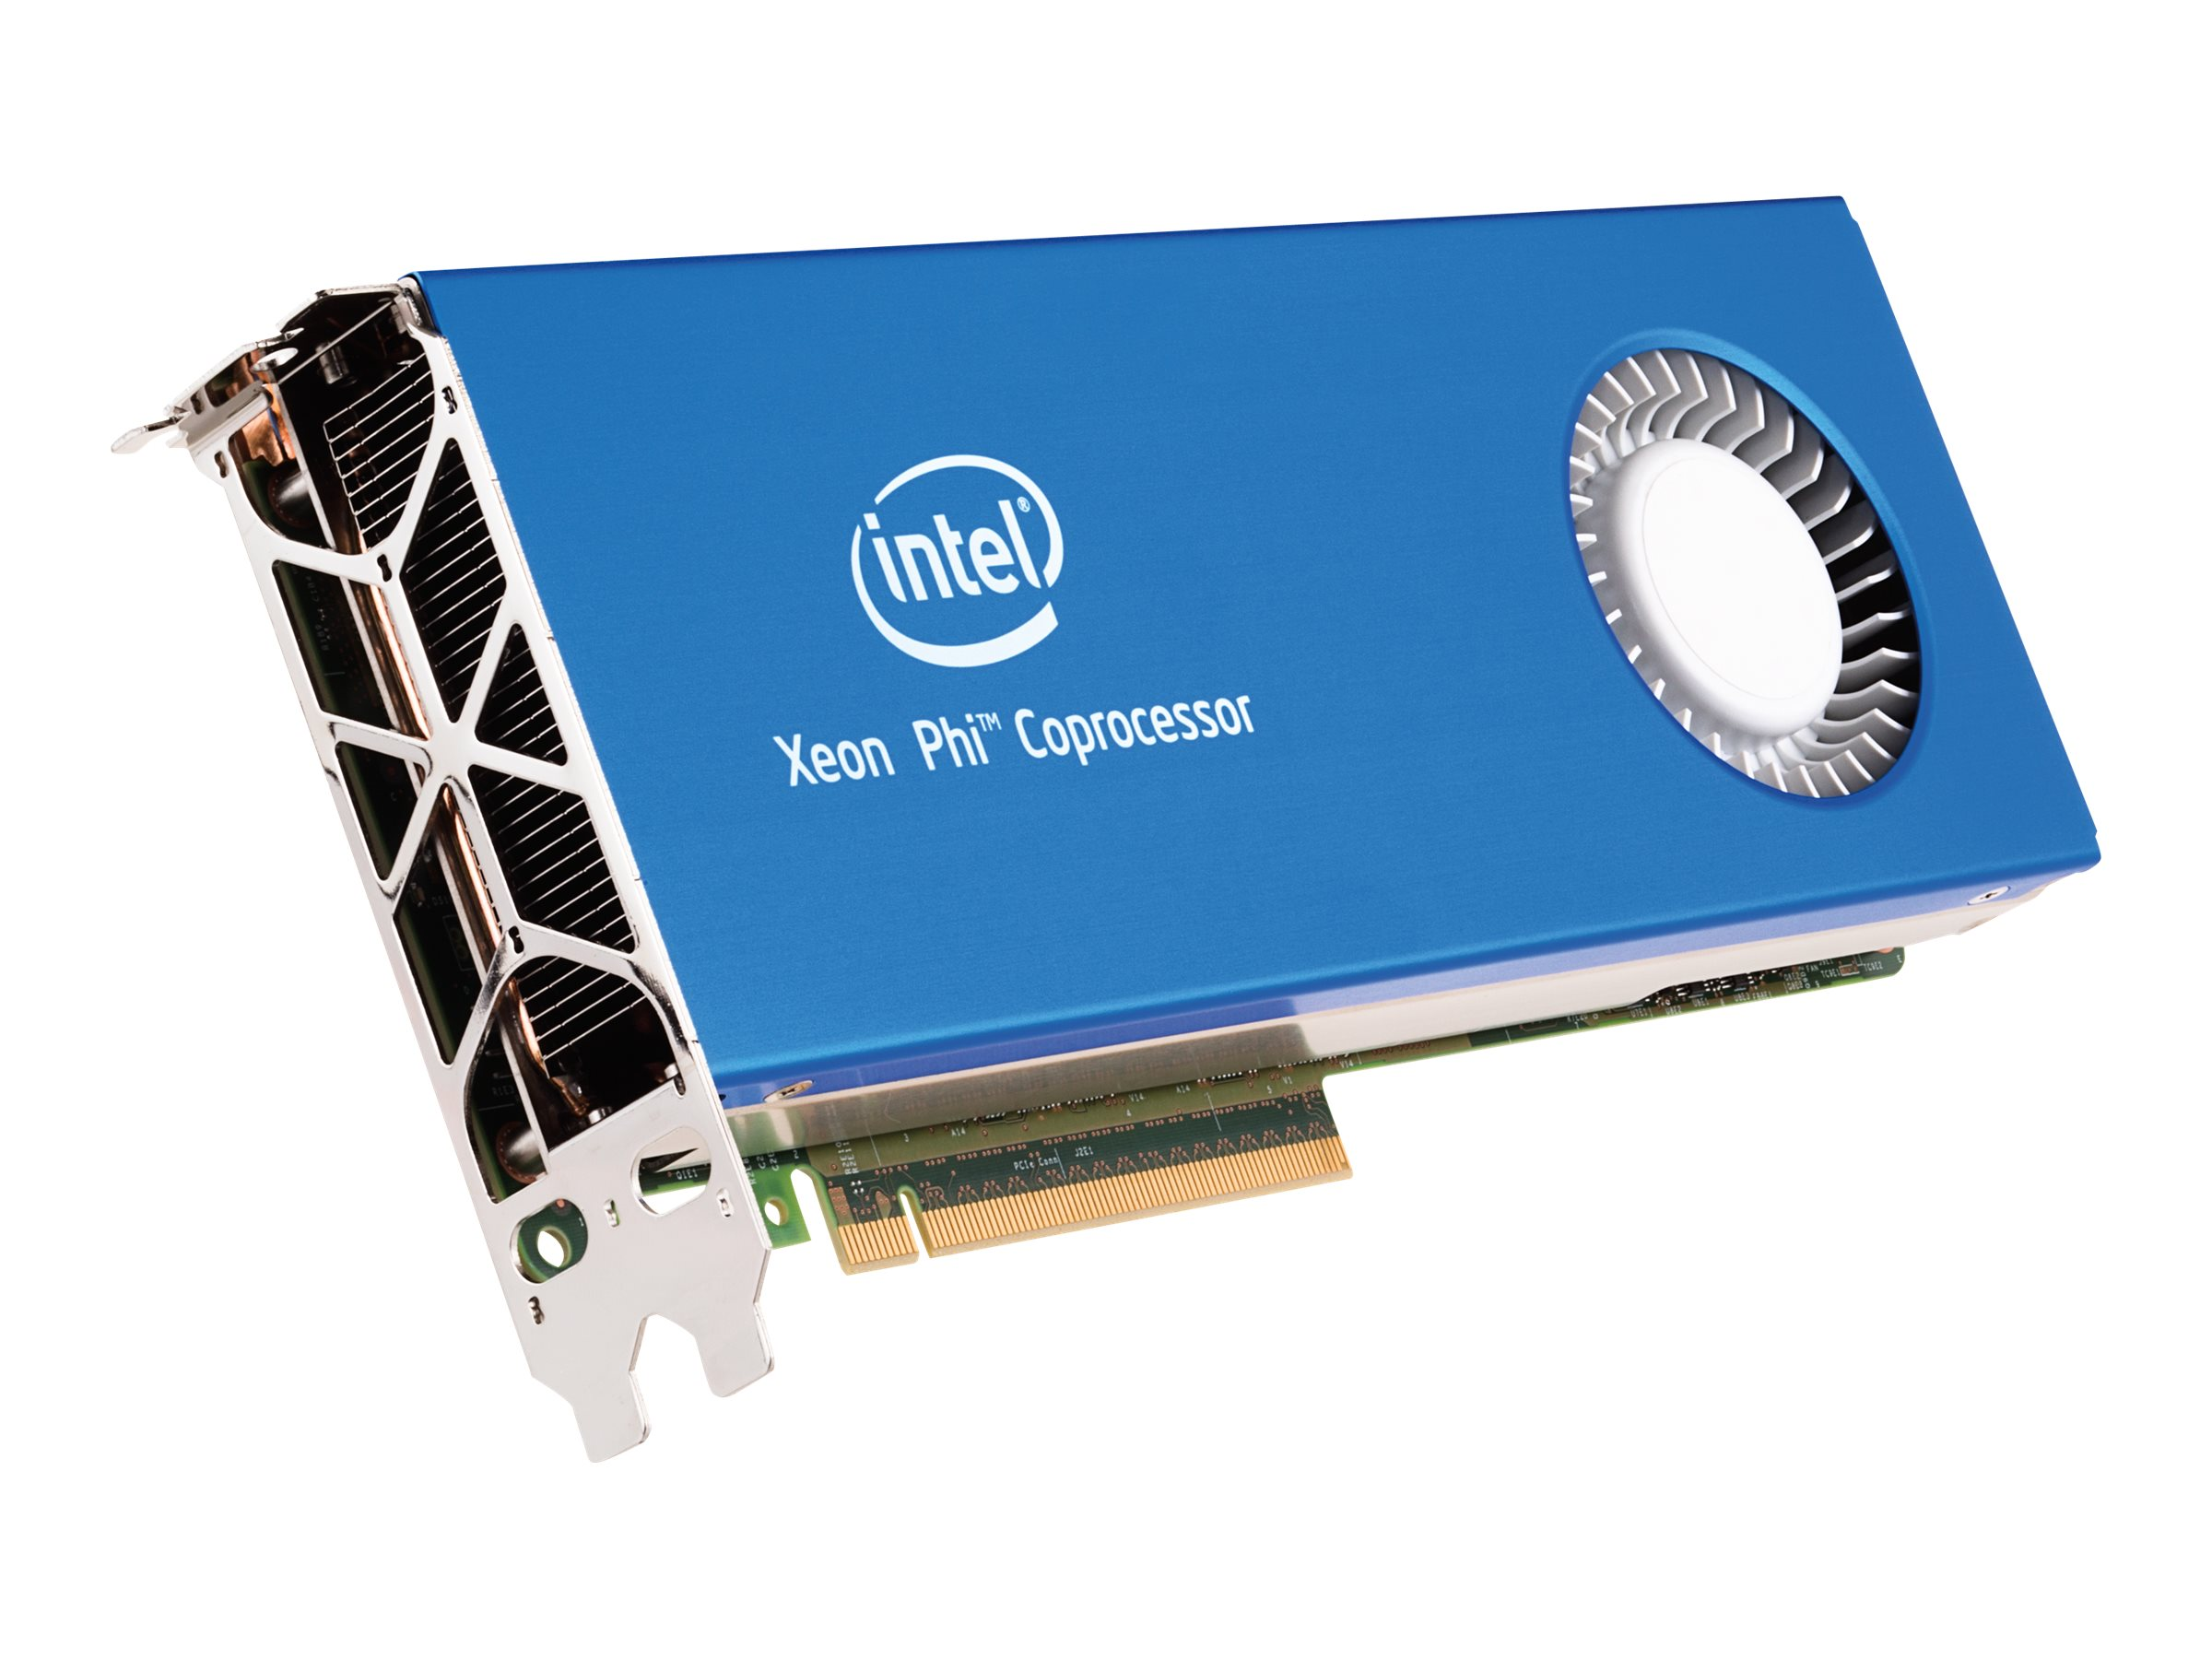 Intel Processor, Xeon Phi Coprocessor 61C 7120D 1.238GHz 30.5MB 270W, SC7120D, 17571694, Processor Upgrades